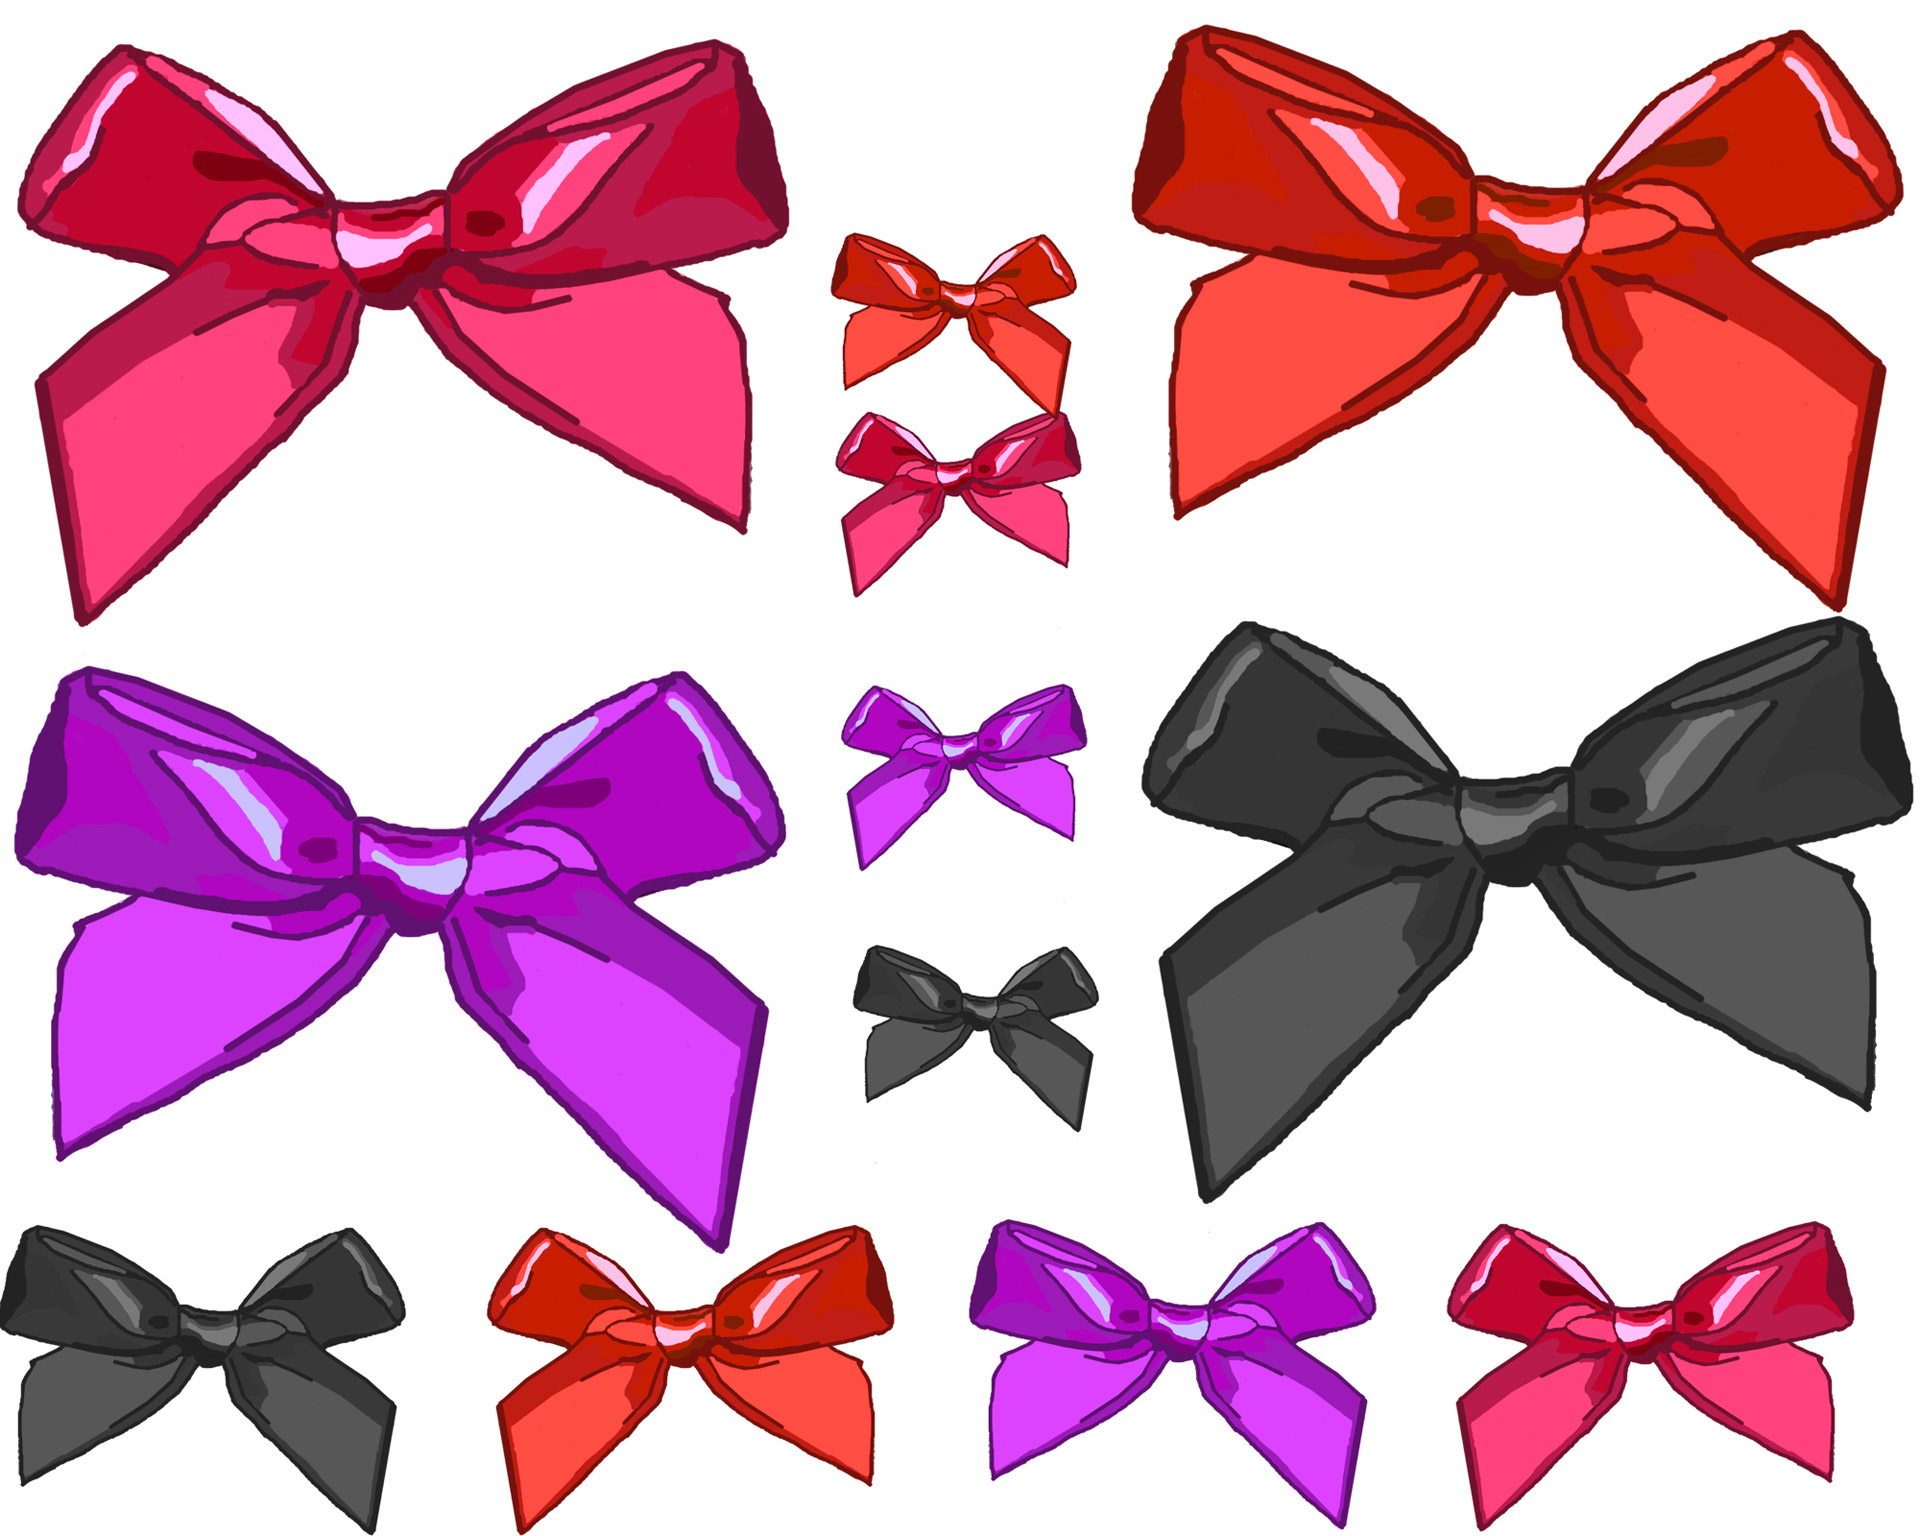 Clipart size banner library stock Various Size Clip Art Bows Free Stock Photo - Public Domain Pictures banner library stock